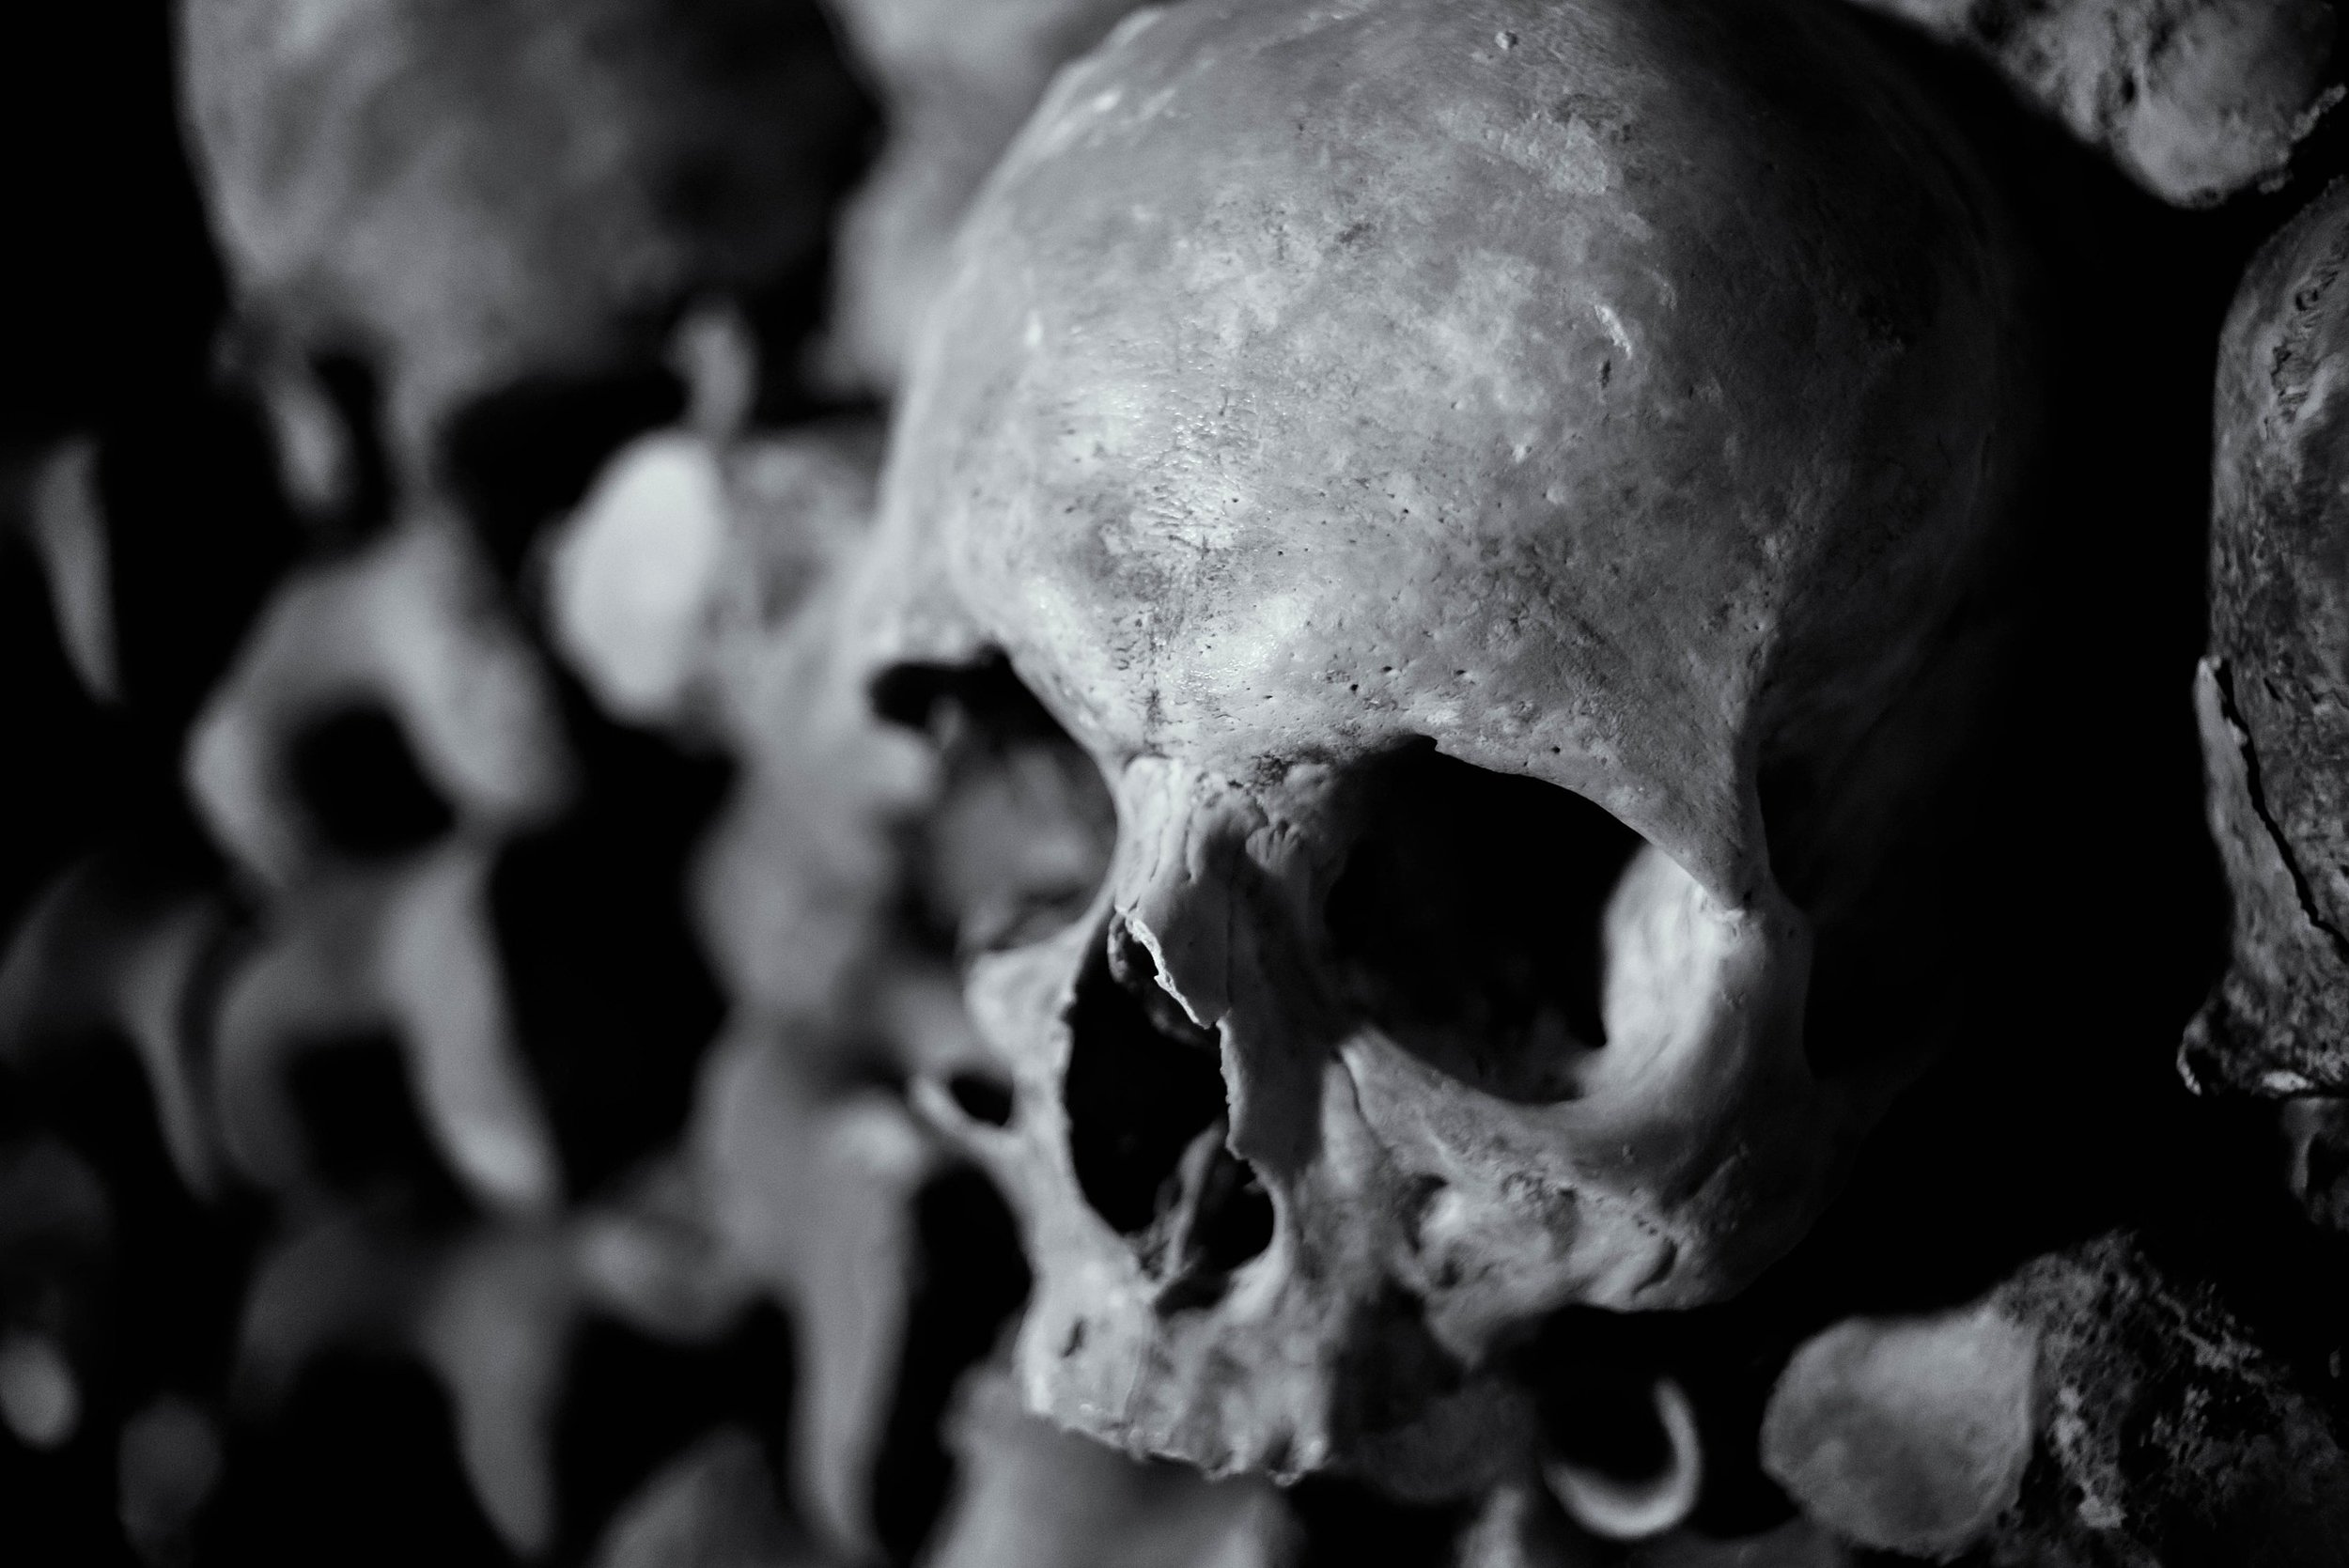 The Human Skull is used universally as a symbol of death. Joe deSousa - Human skull in the catacombs of Paris